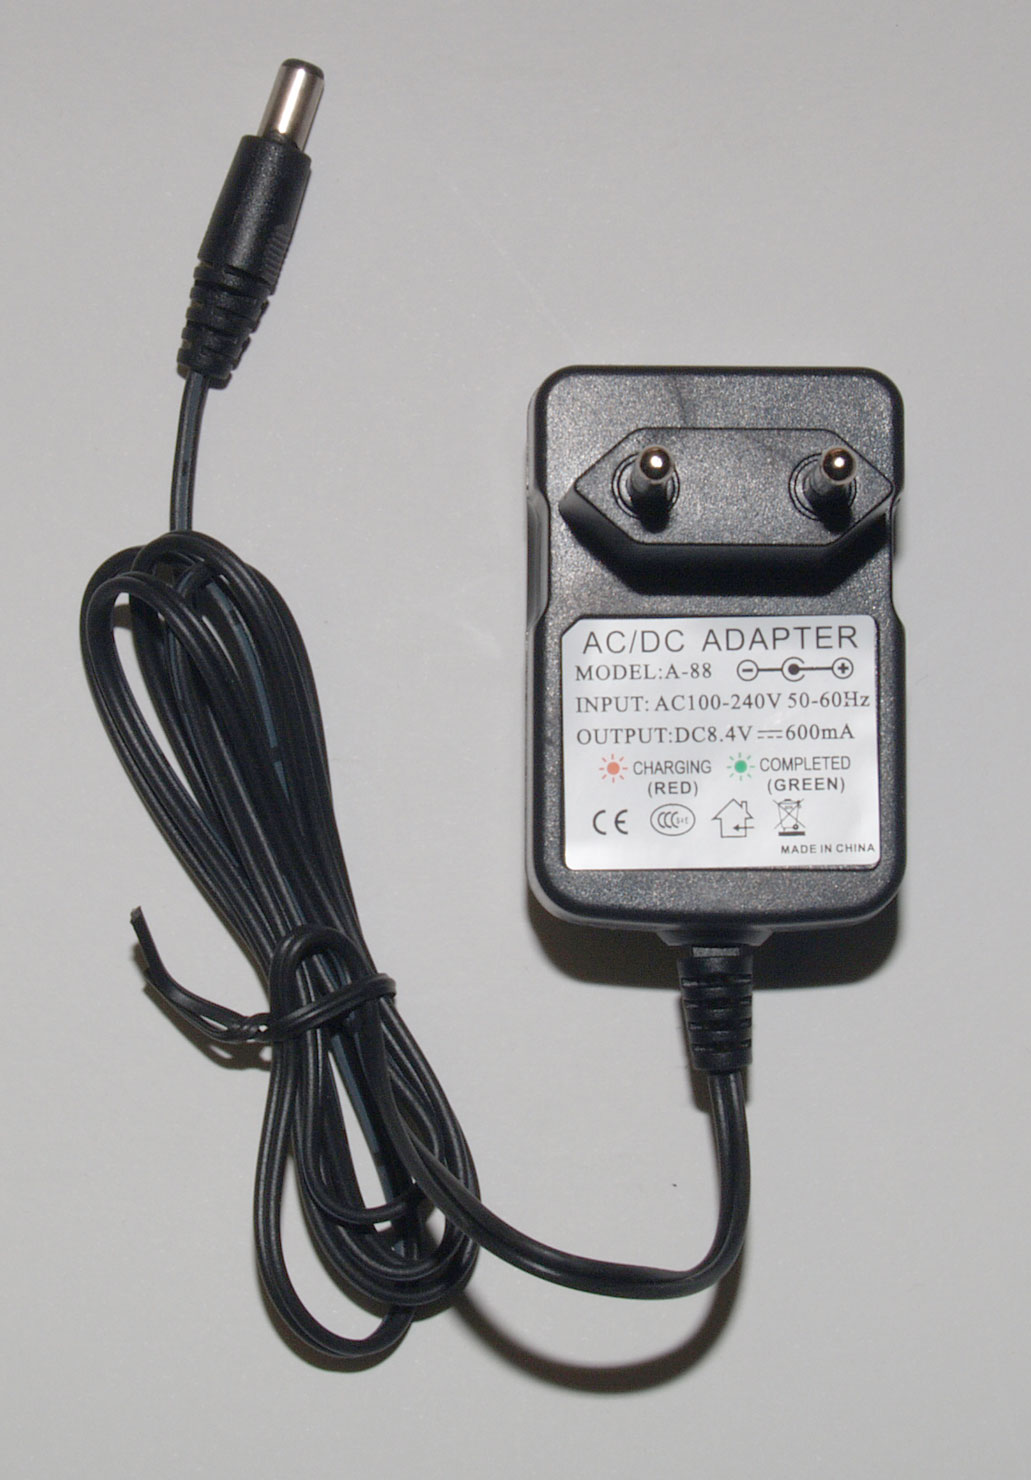 Mains Charger with 2-pin Euro Plug for Baofeng UV-5R, UV-B5, UV-82, B-580T & GT-3 handheld transceivers